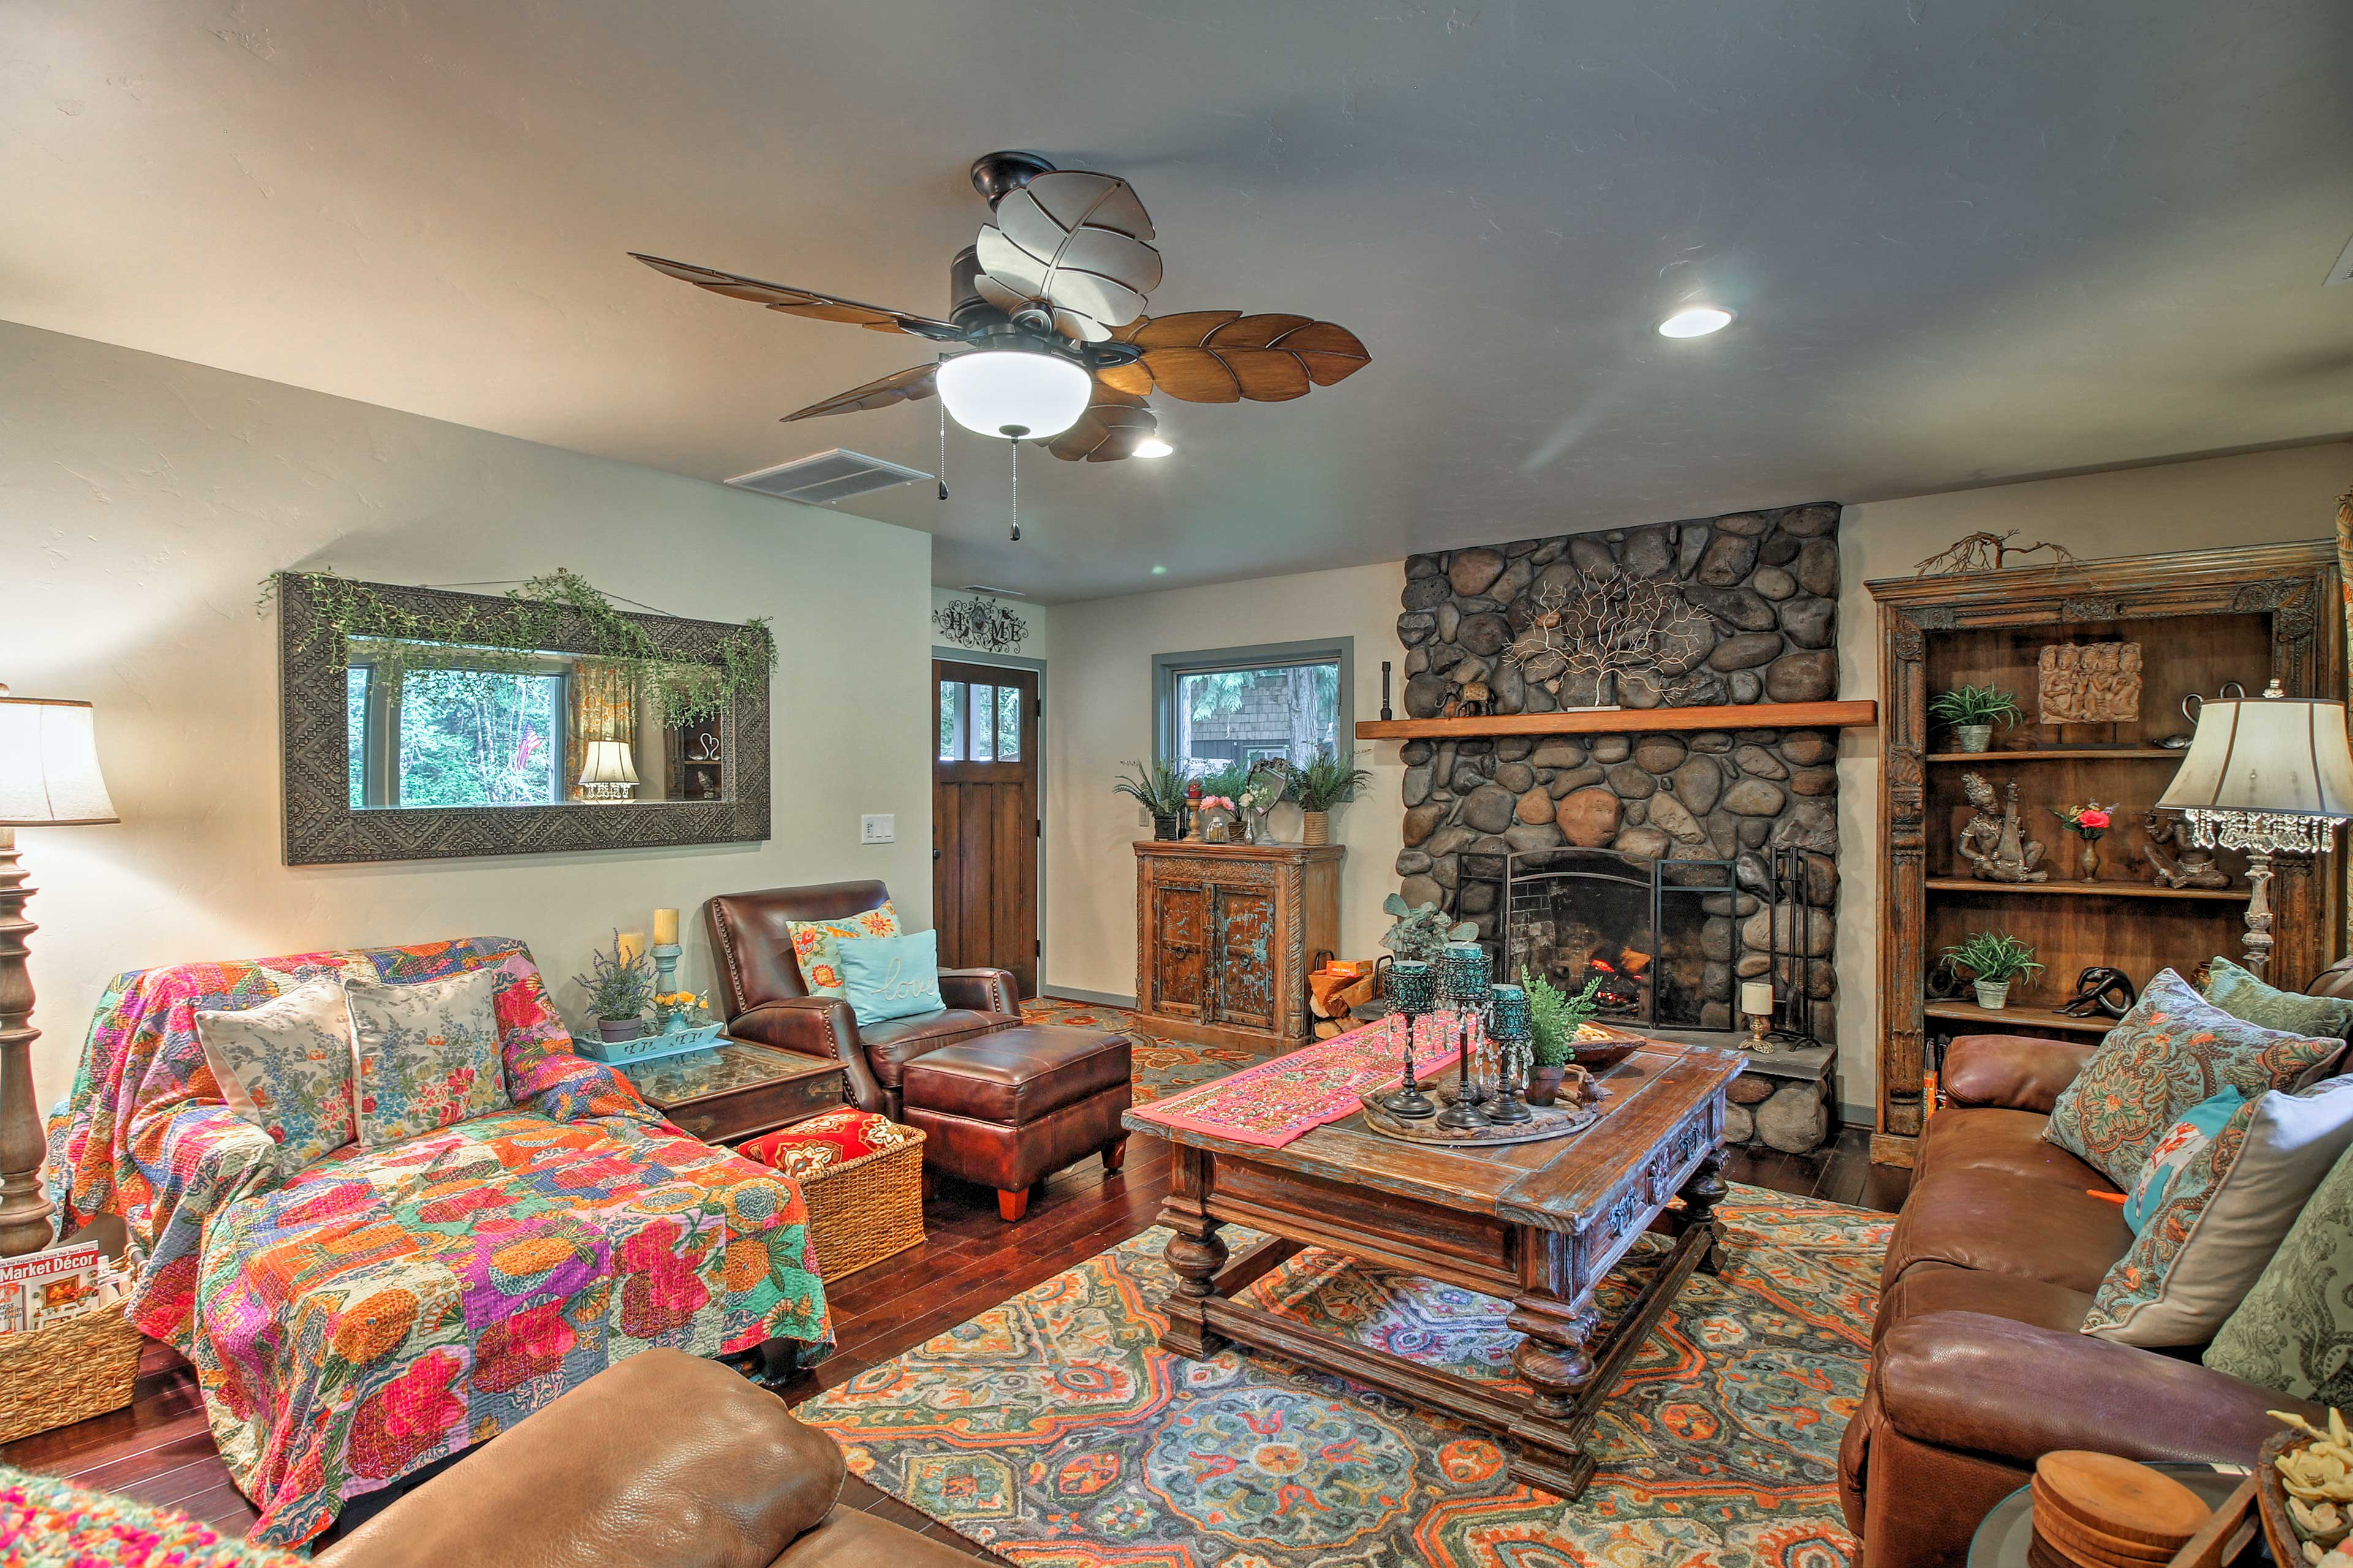 You could ask for an amazing living space, but the home already has that!